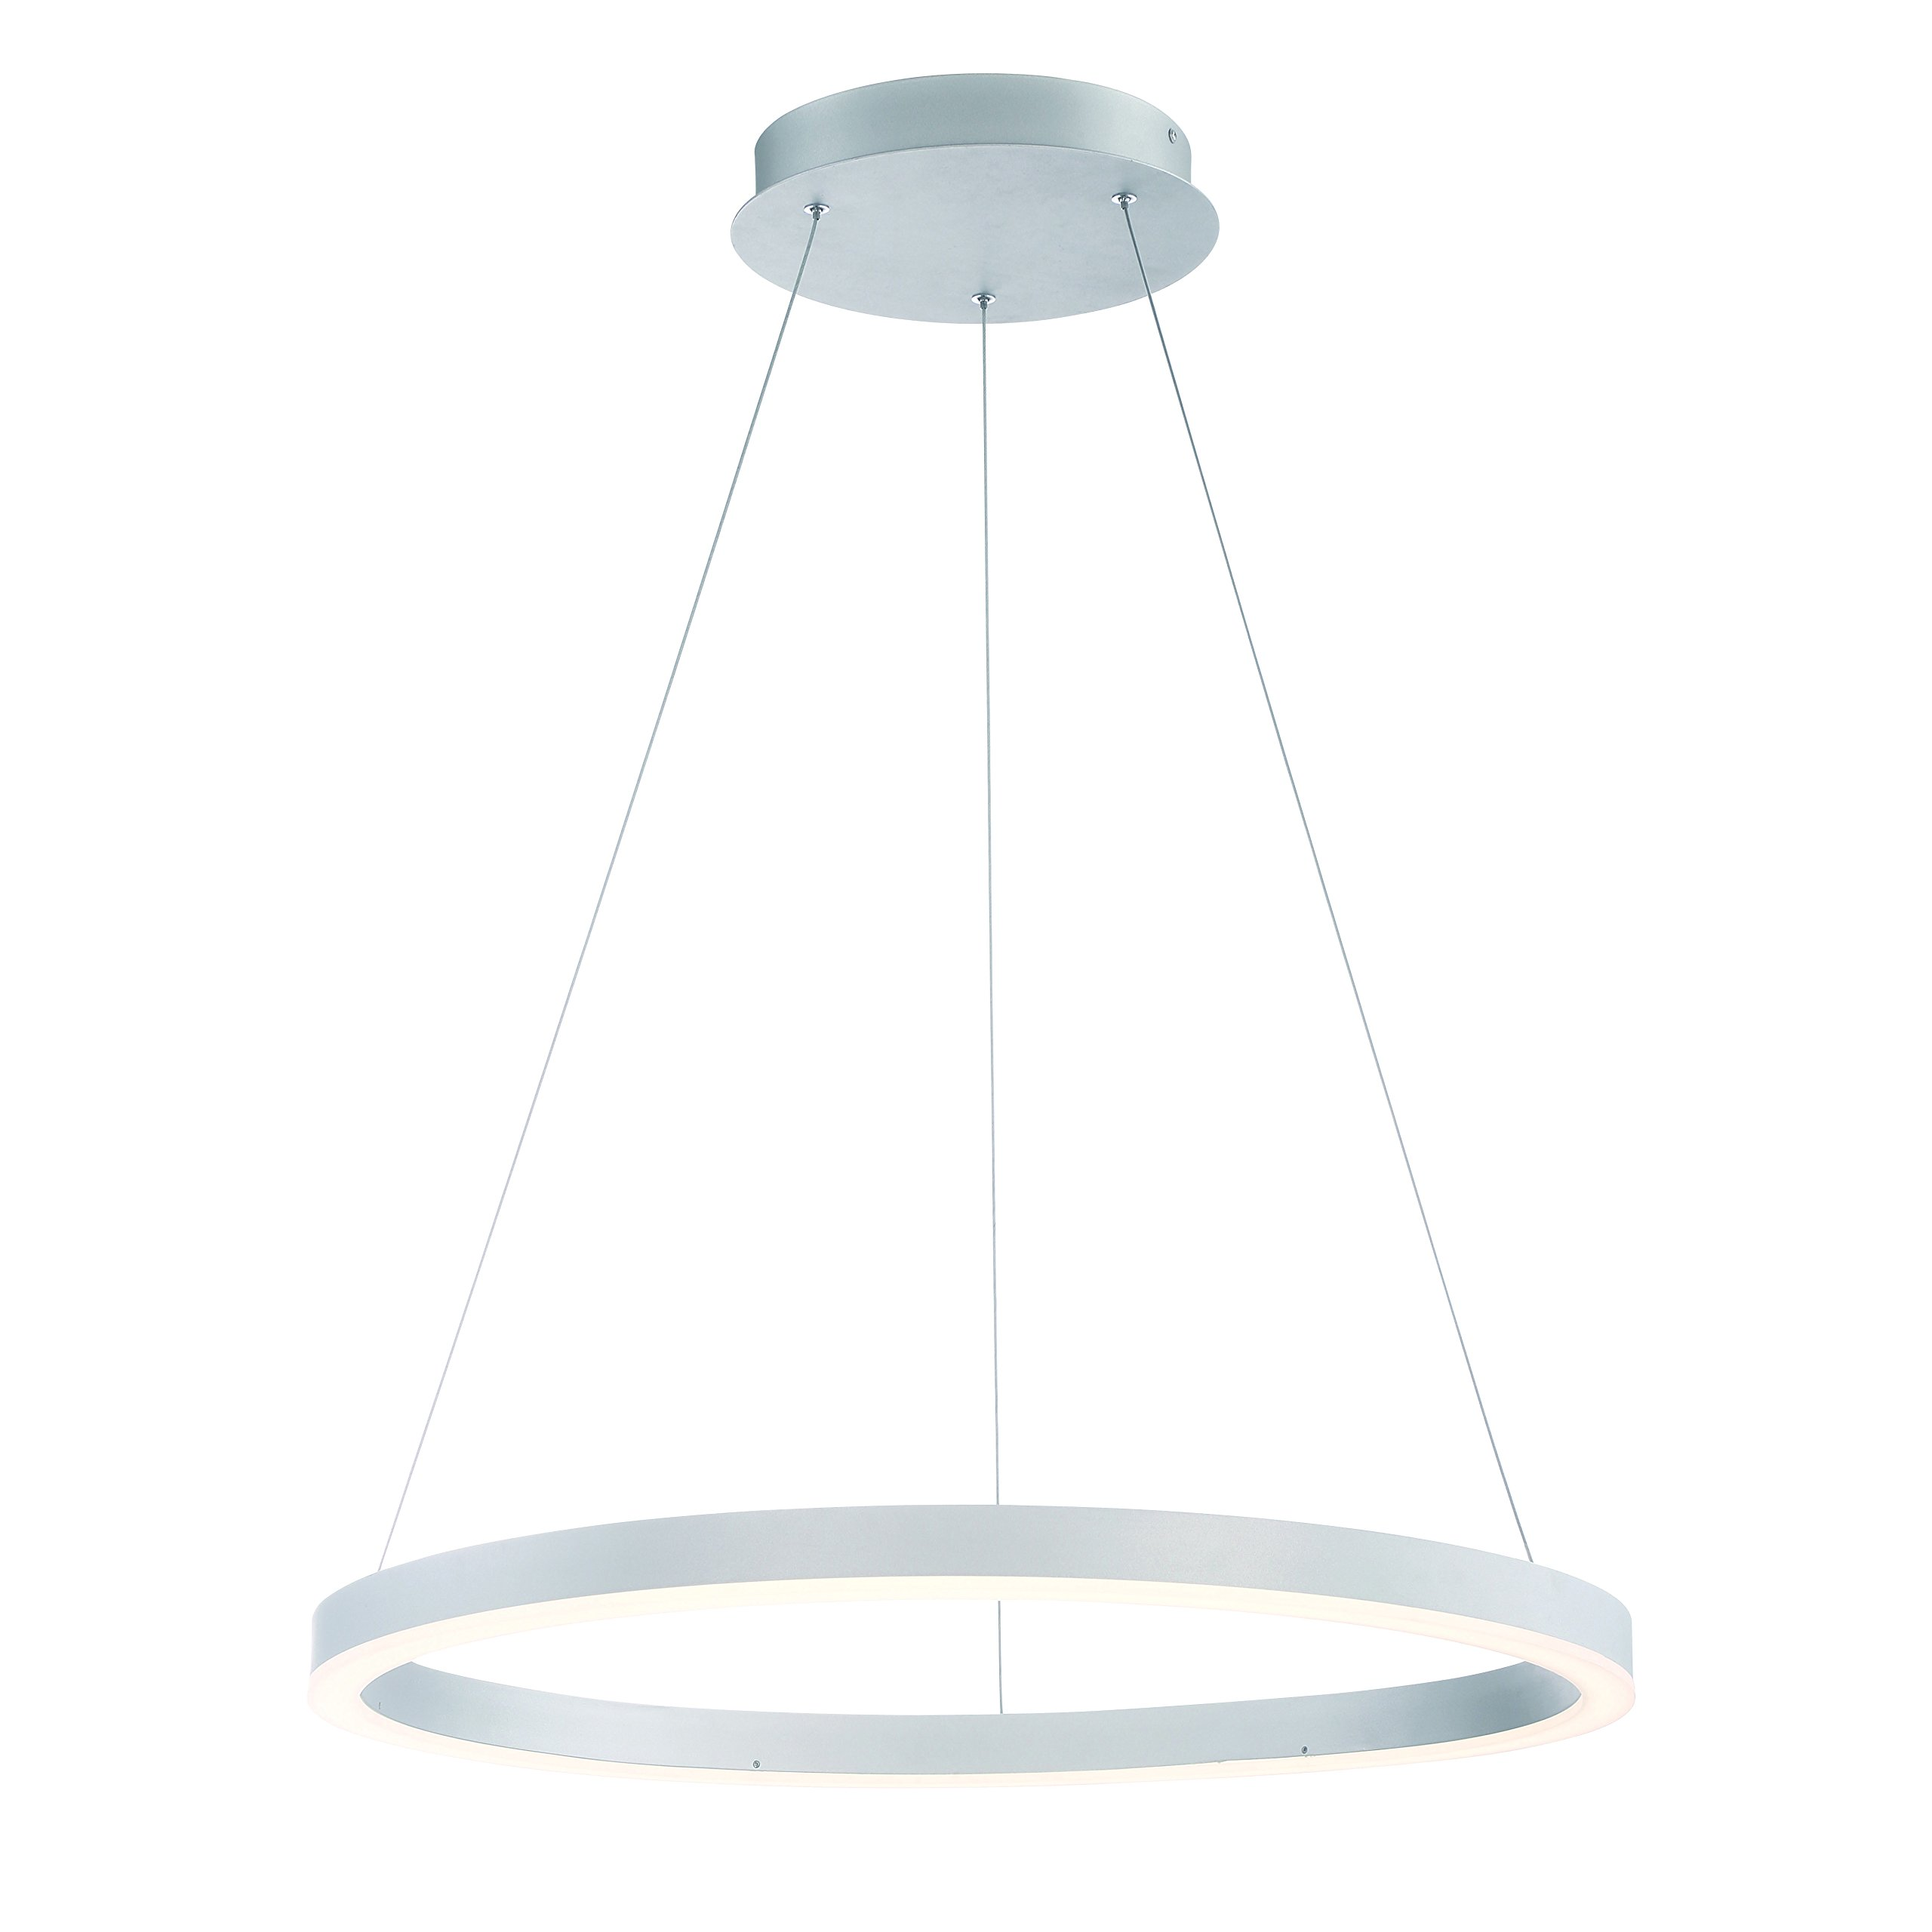 Eurofase 31471-015 Spunto Oversized LED Ring Chandelier Opal Diffused Shade, 27.5 Inches in Diameter-Model, Aluminum Finish